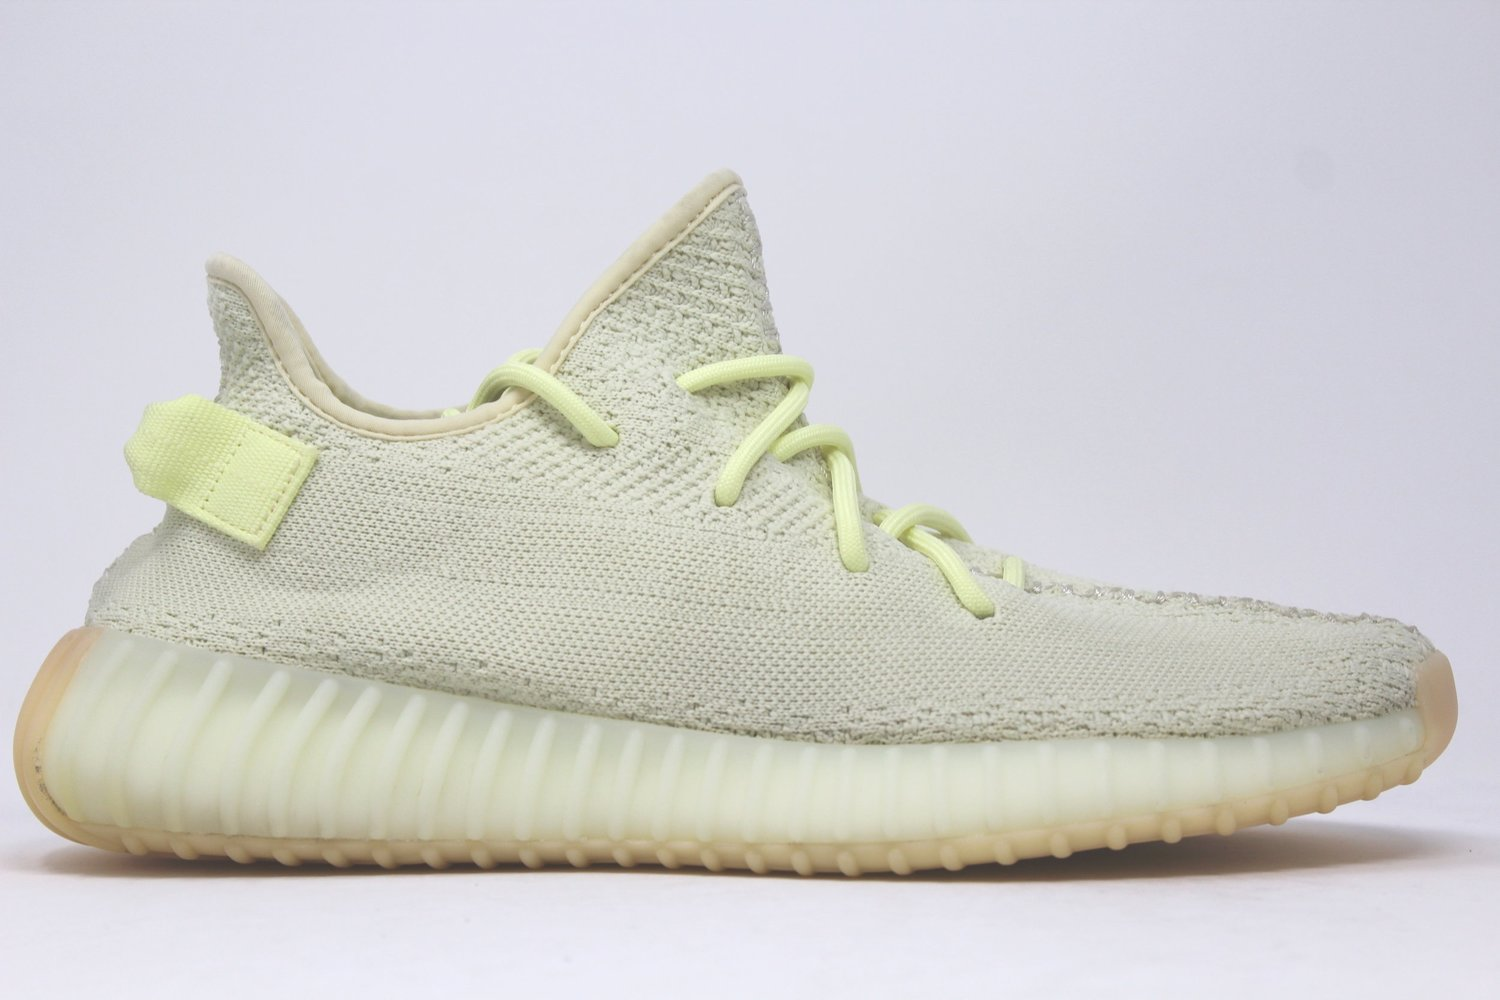 100% authentic a5ed2 96e03 Adidas Yeezy Boost 350 V2 Butter (Excellent)